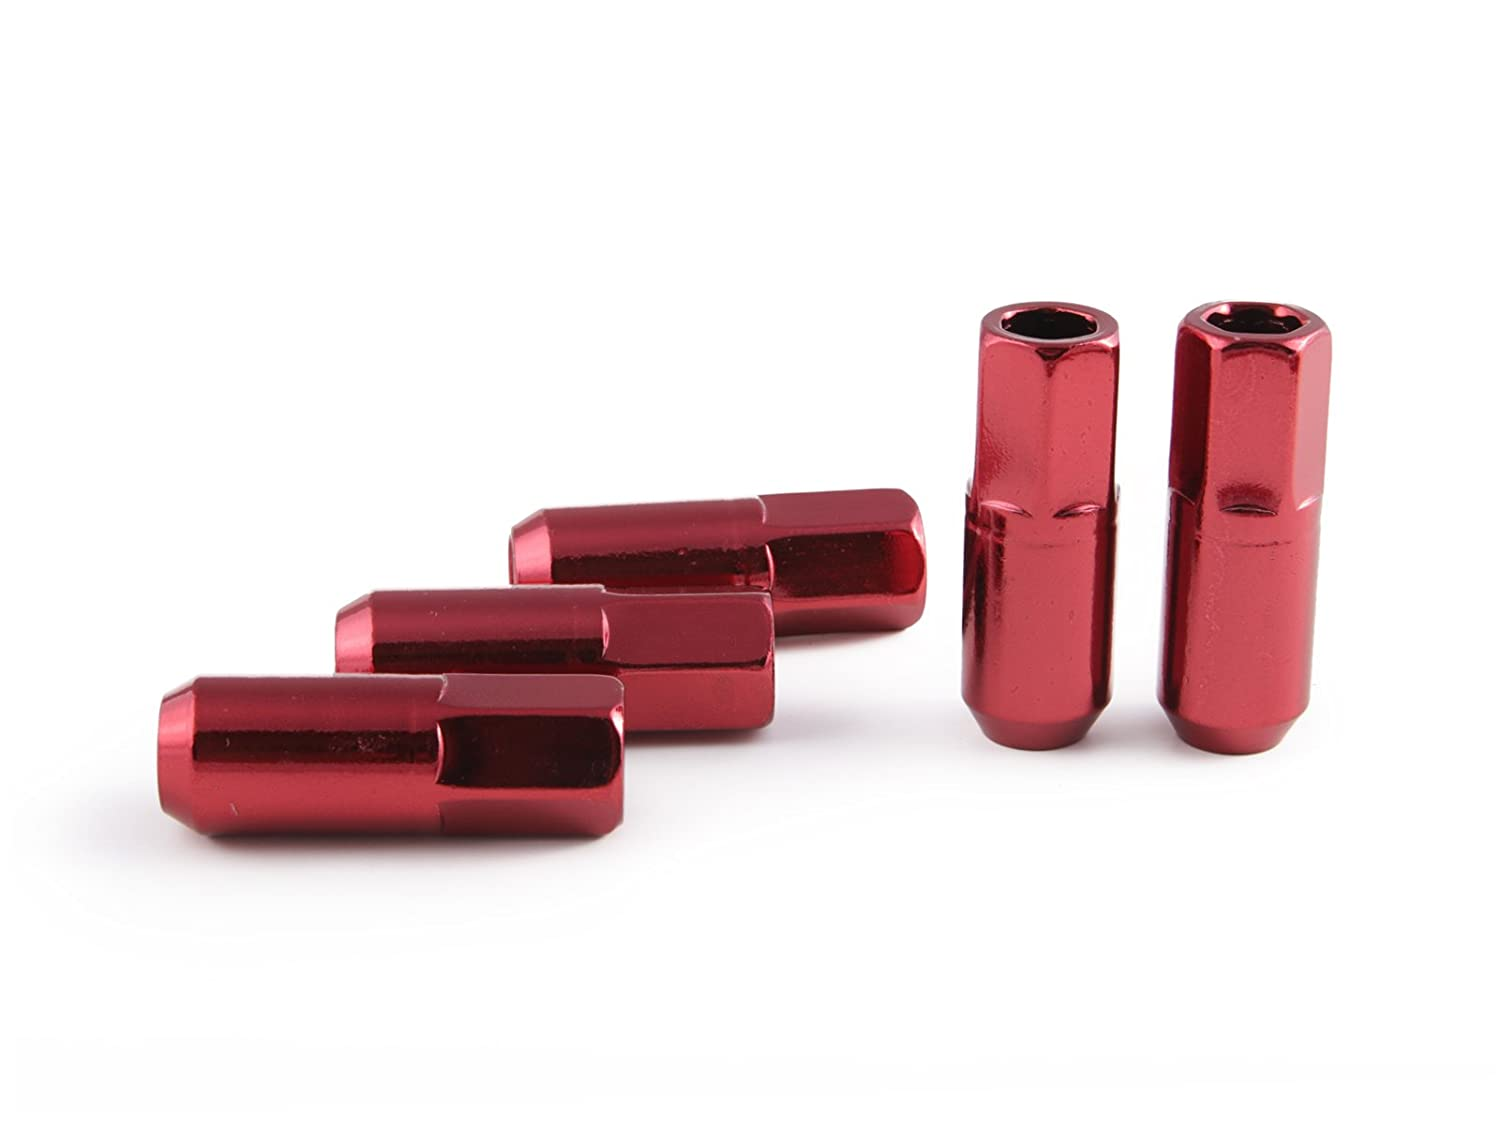 Open End 20pc Extended Tuner Race Red Lug Nuts 60 degree - 2.4 Length Cone Conical Taper Acorn Seat for Nissan Infiniti Subaru 12x1.25 Thread Size More